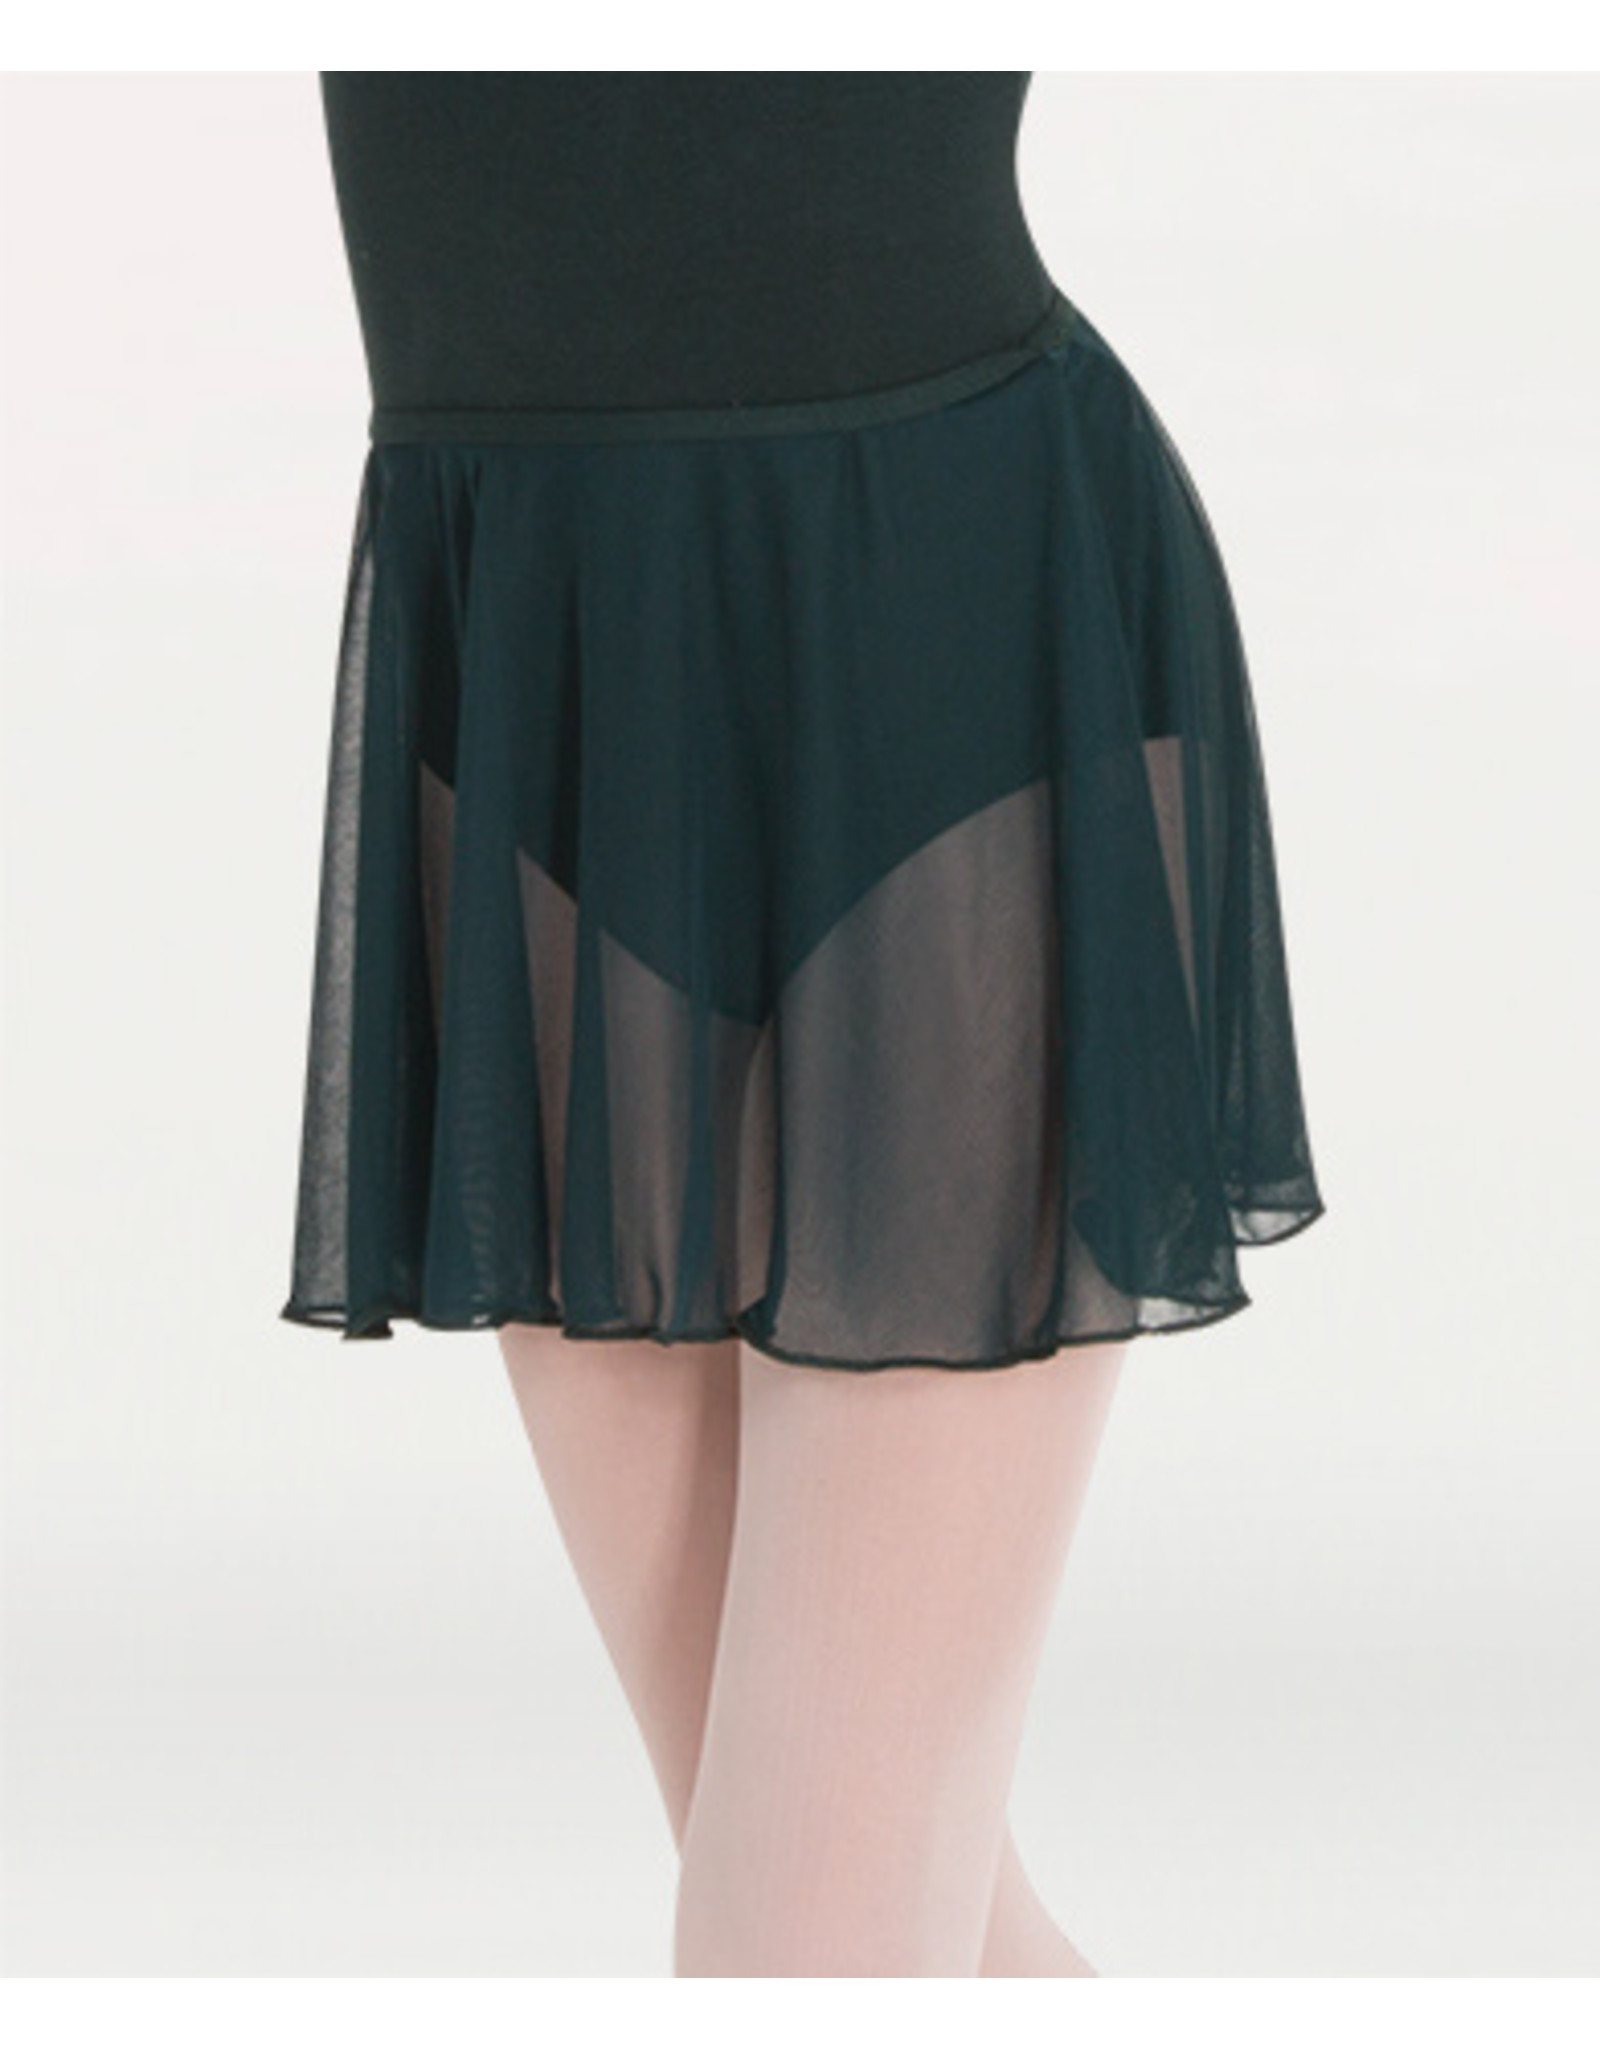 BODYWRAPPERS CHIFFON PULL-ON DANCE SKIRT